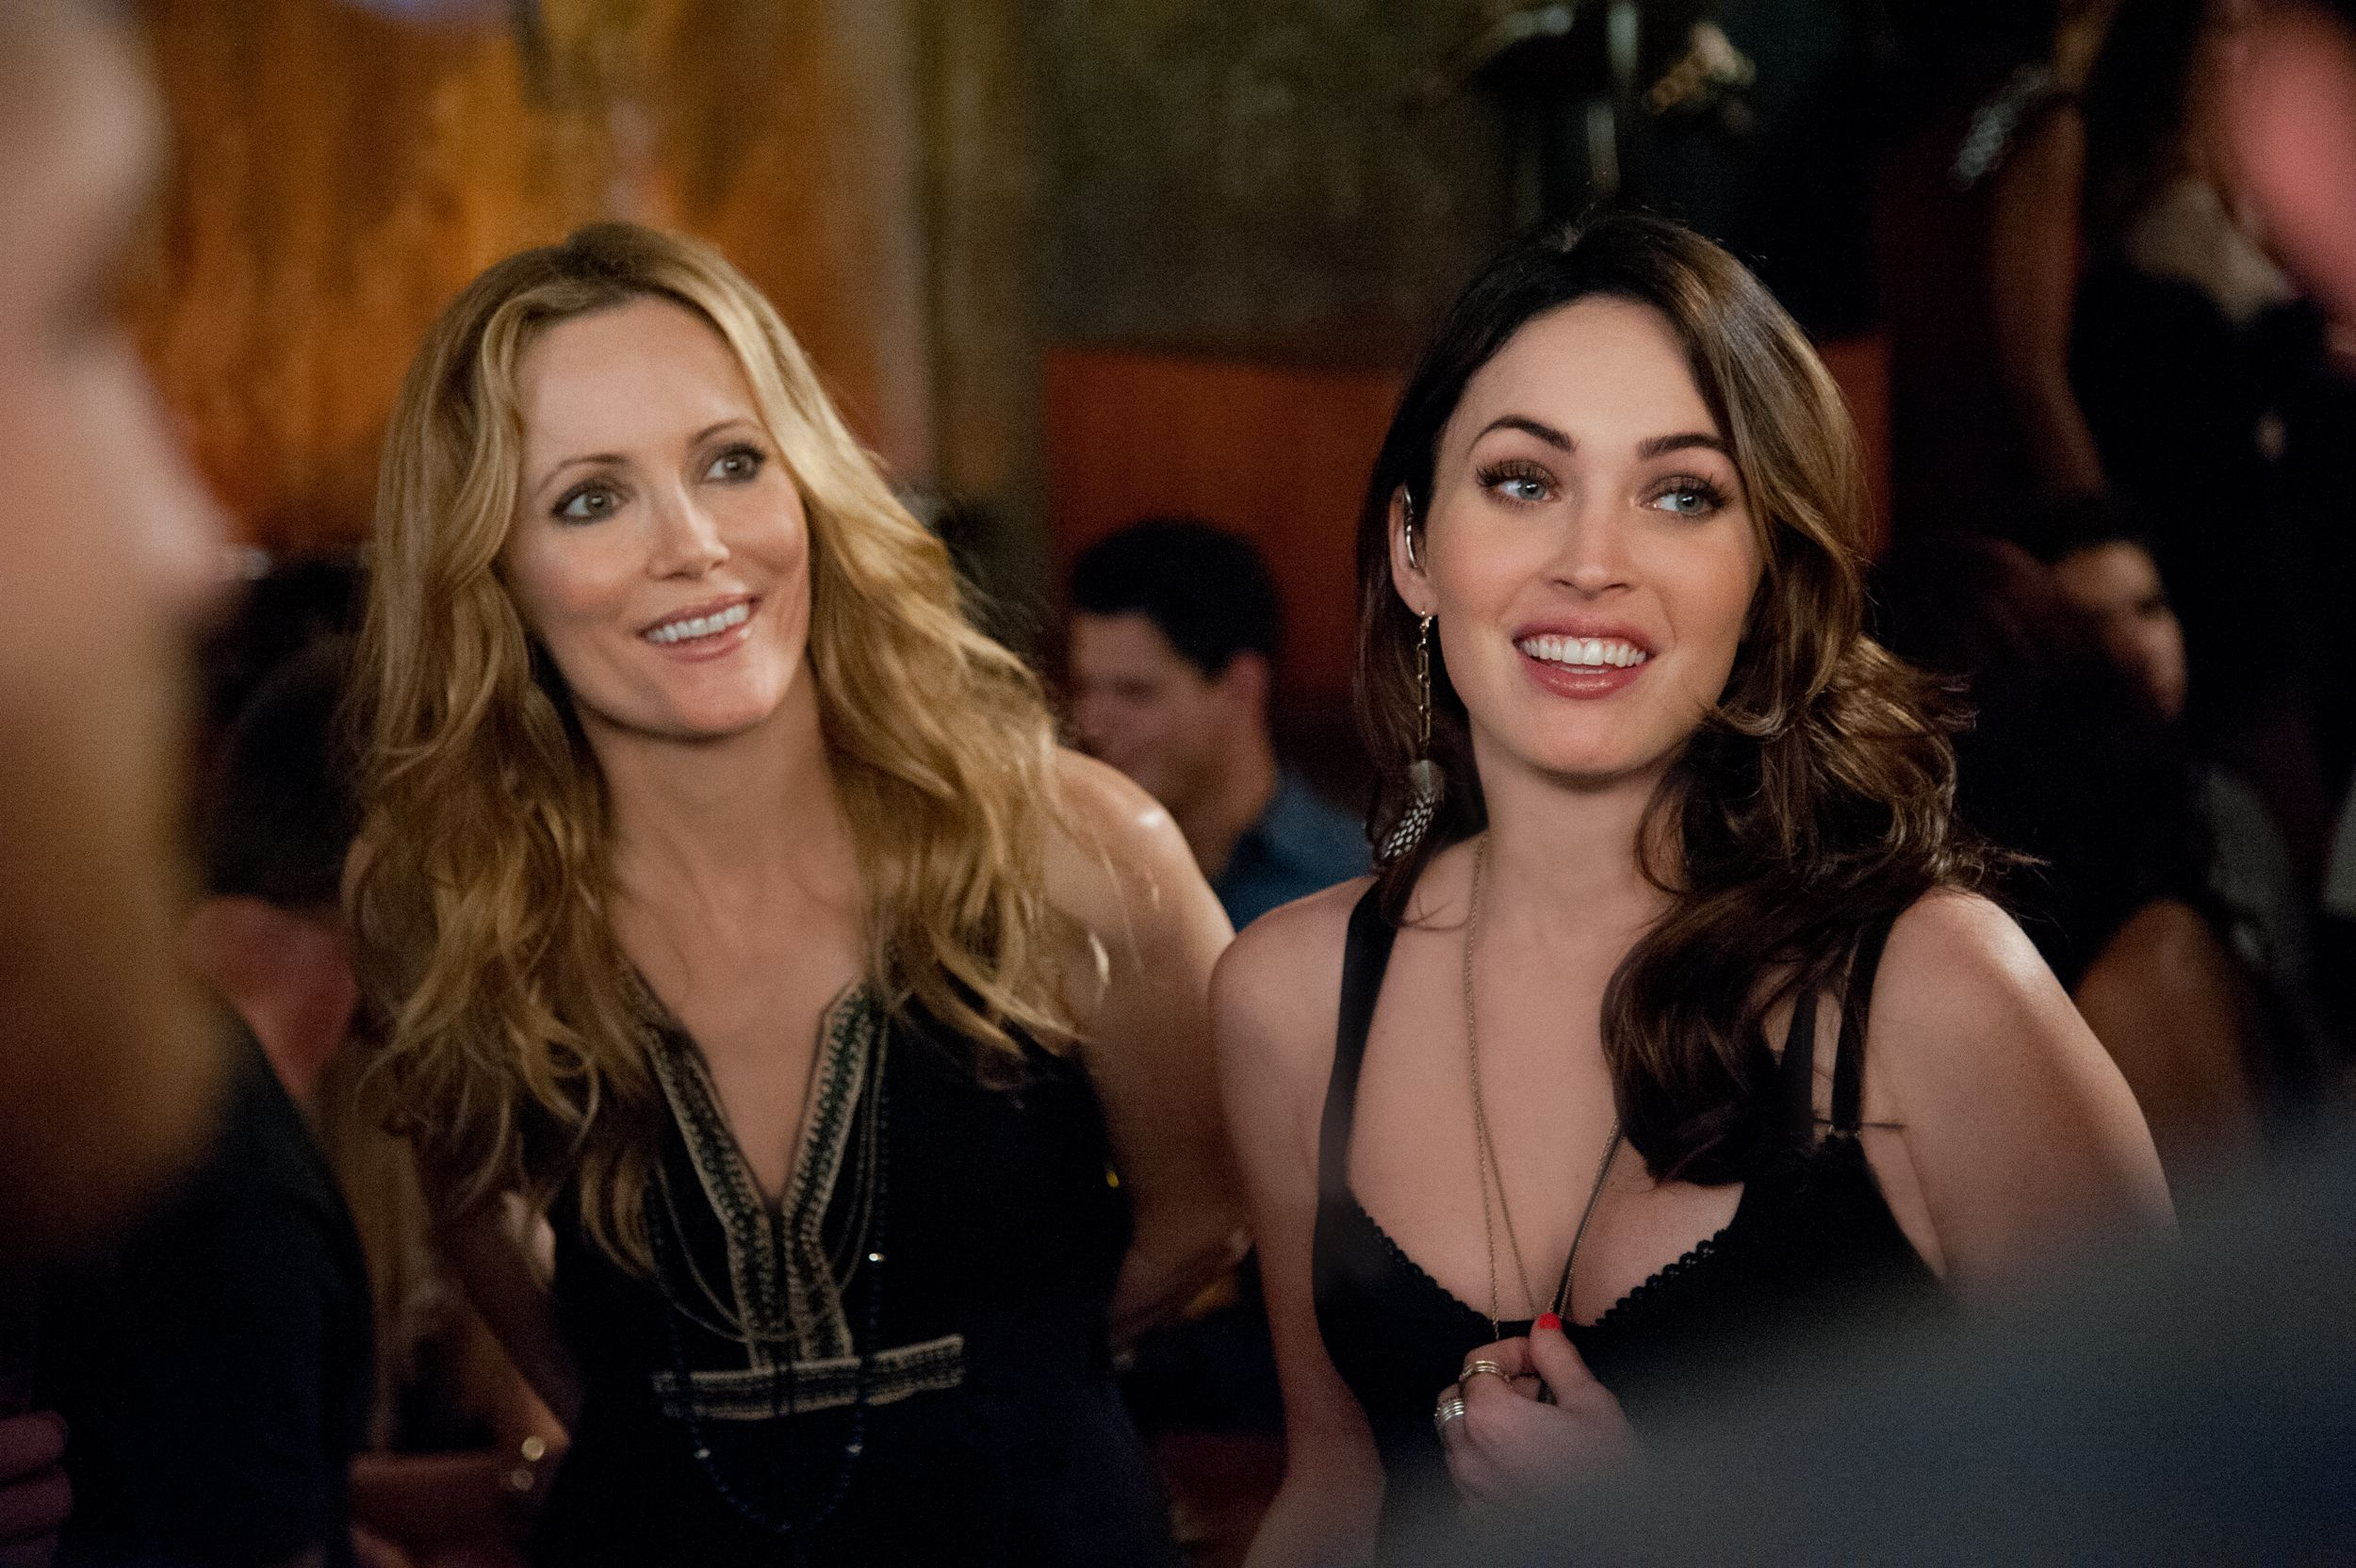 http://cdn.collider.com/wp-content/uploads/this-is-40-leslie-mann-megan-fox.jpg Leslie Mann Kids In This Is 40